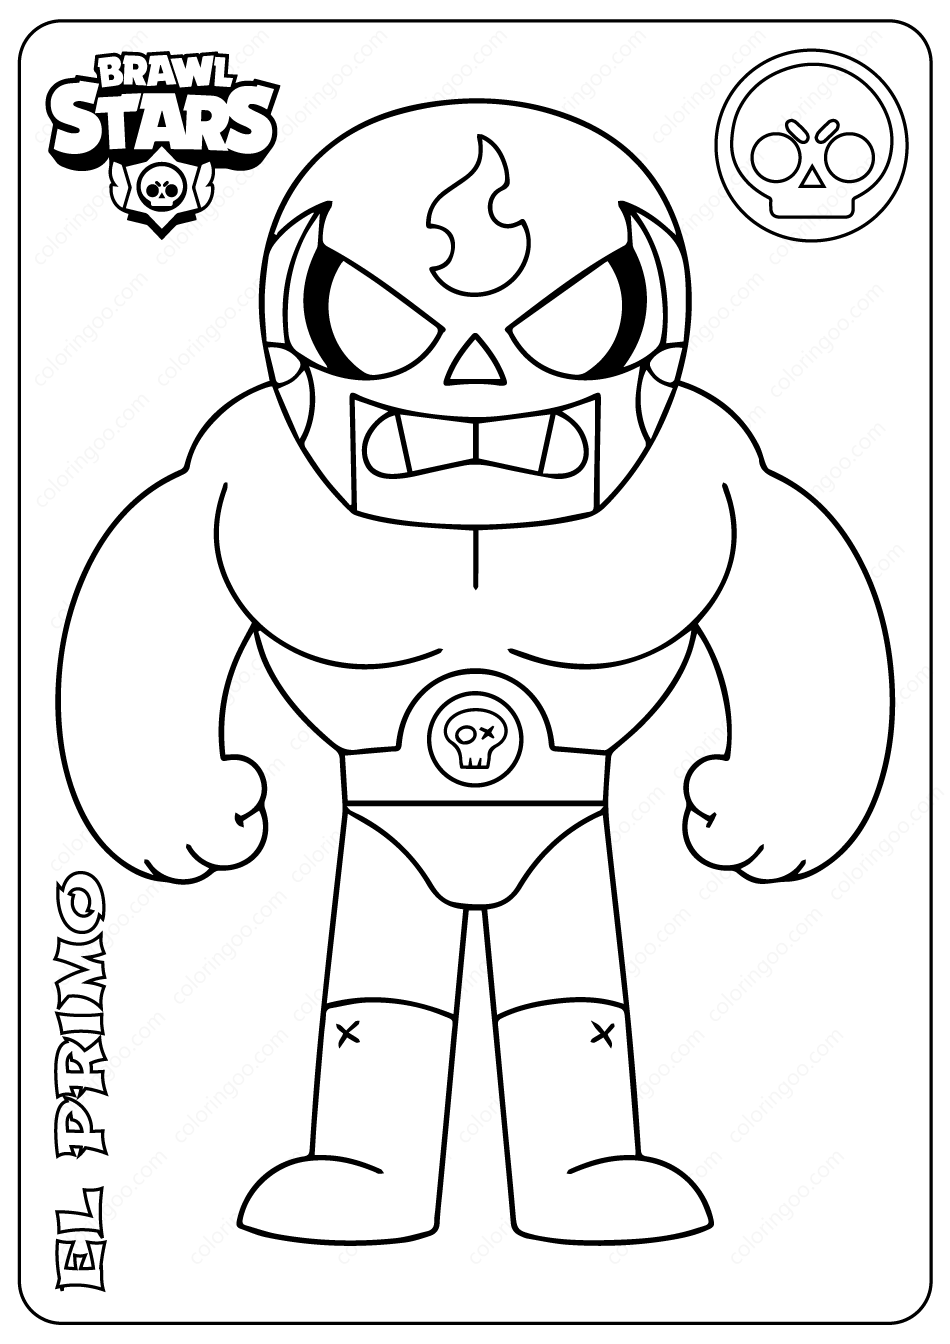 Brawl Stars El Primo Pdf Coloring Pages Star Coloring Pages Coloring Pages Printable Coloring Pages